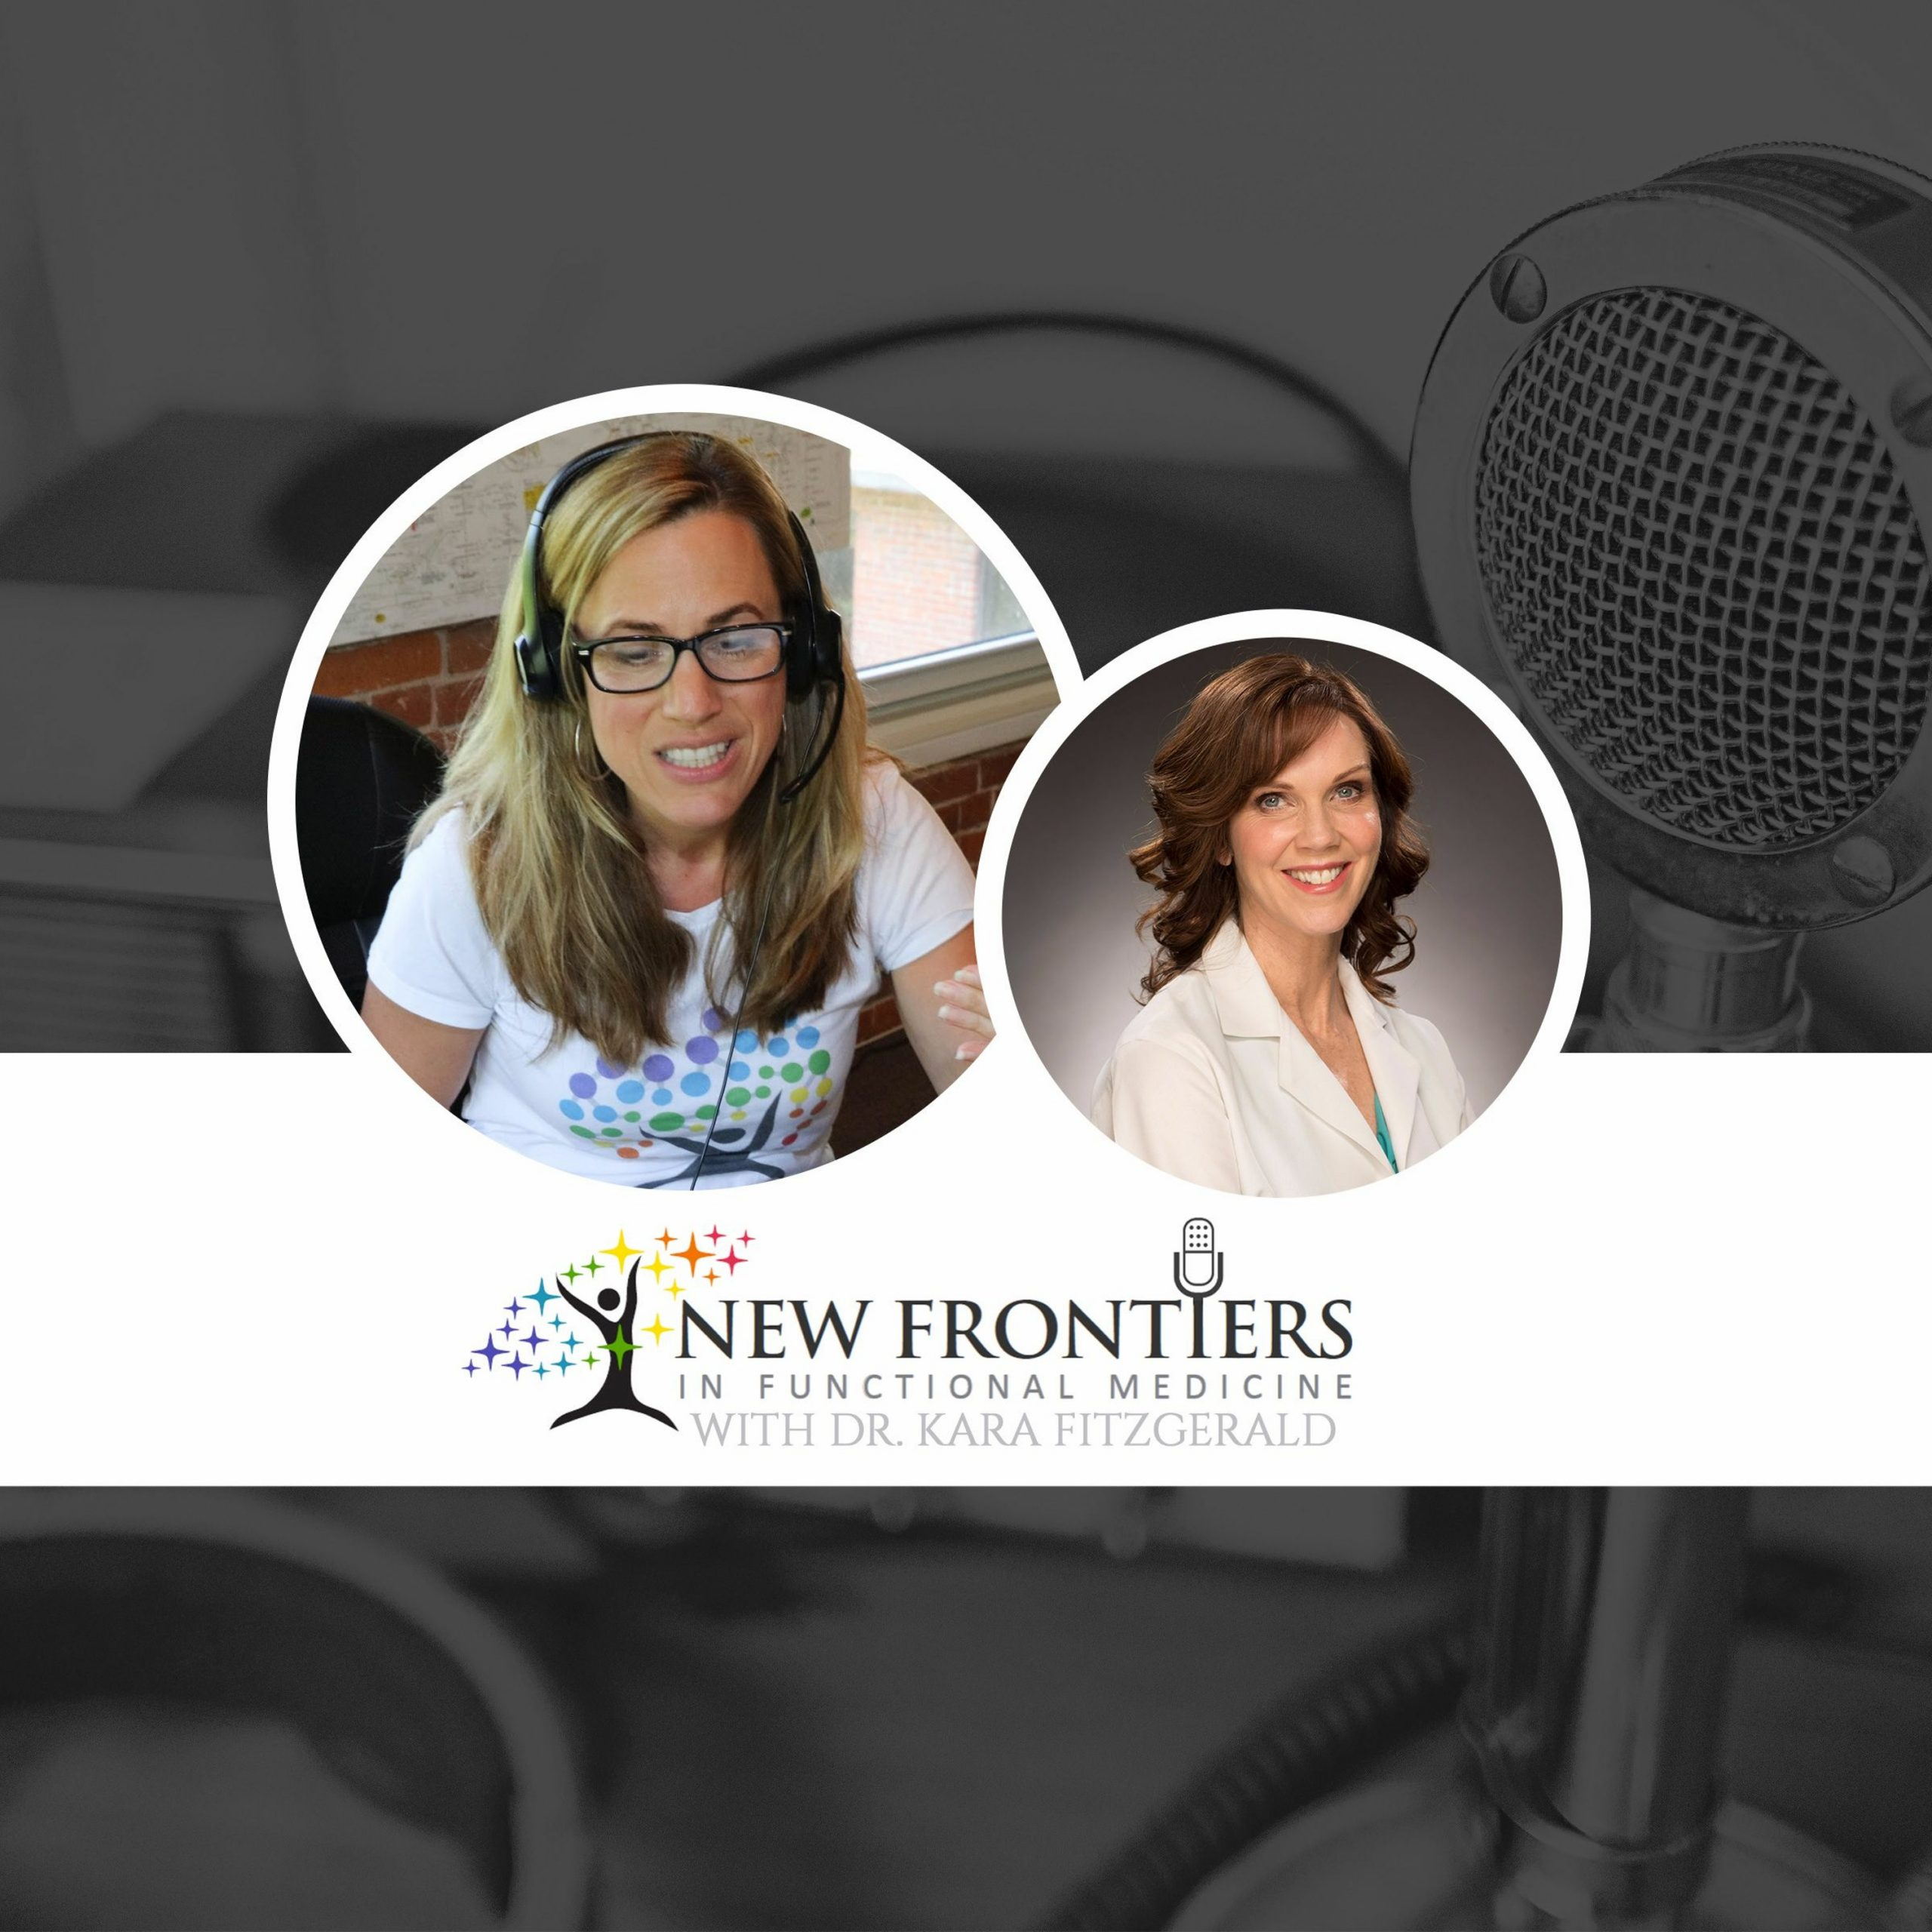 Episode 25: Stem cell therapy: Is it ready for Prime Time FxMed?